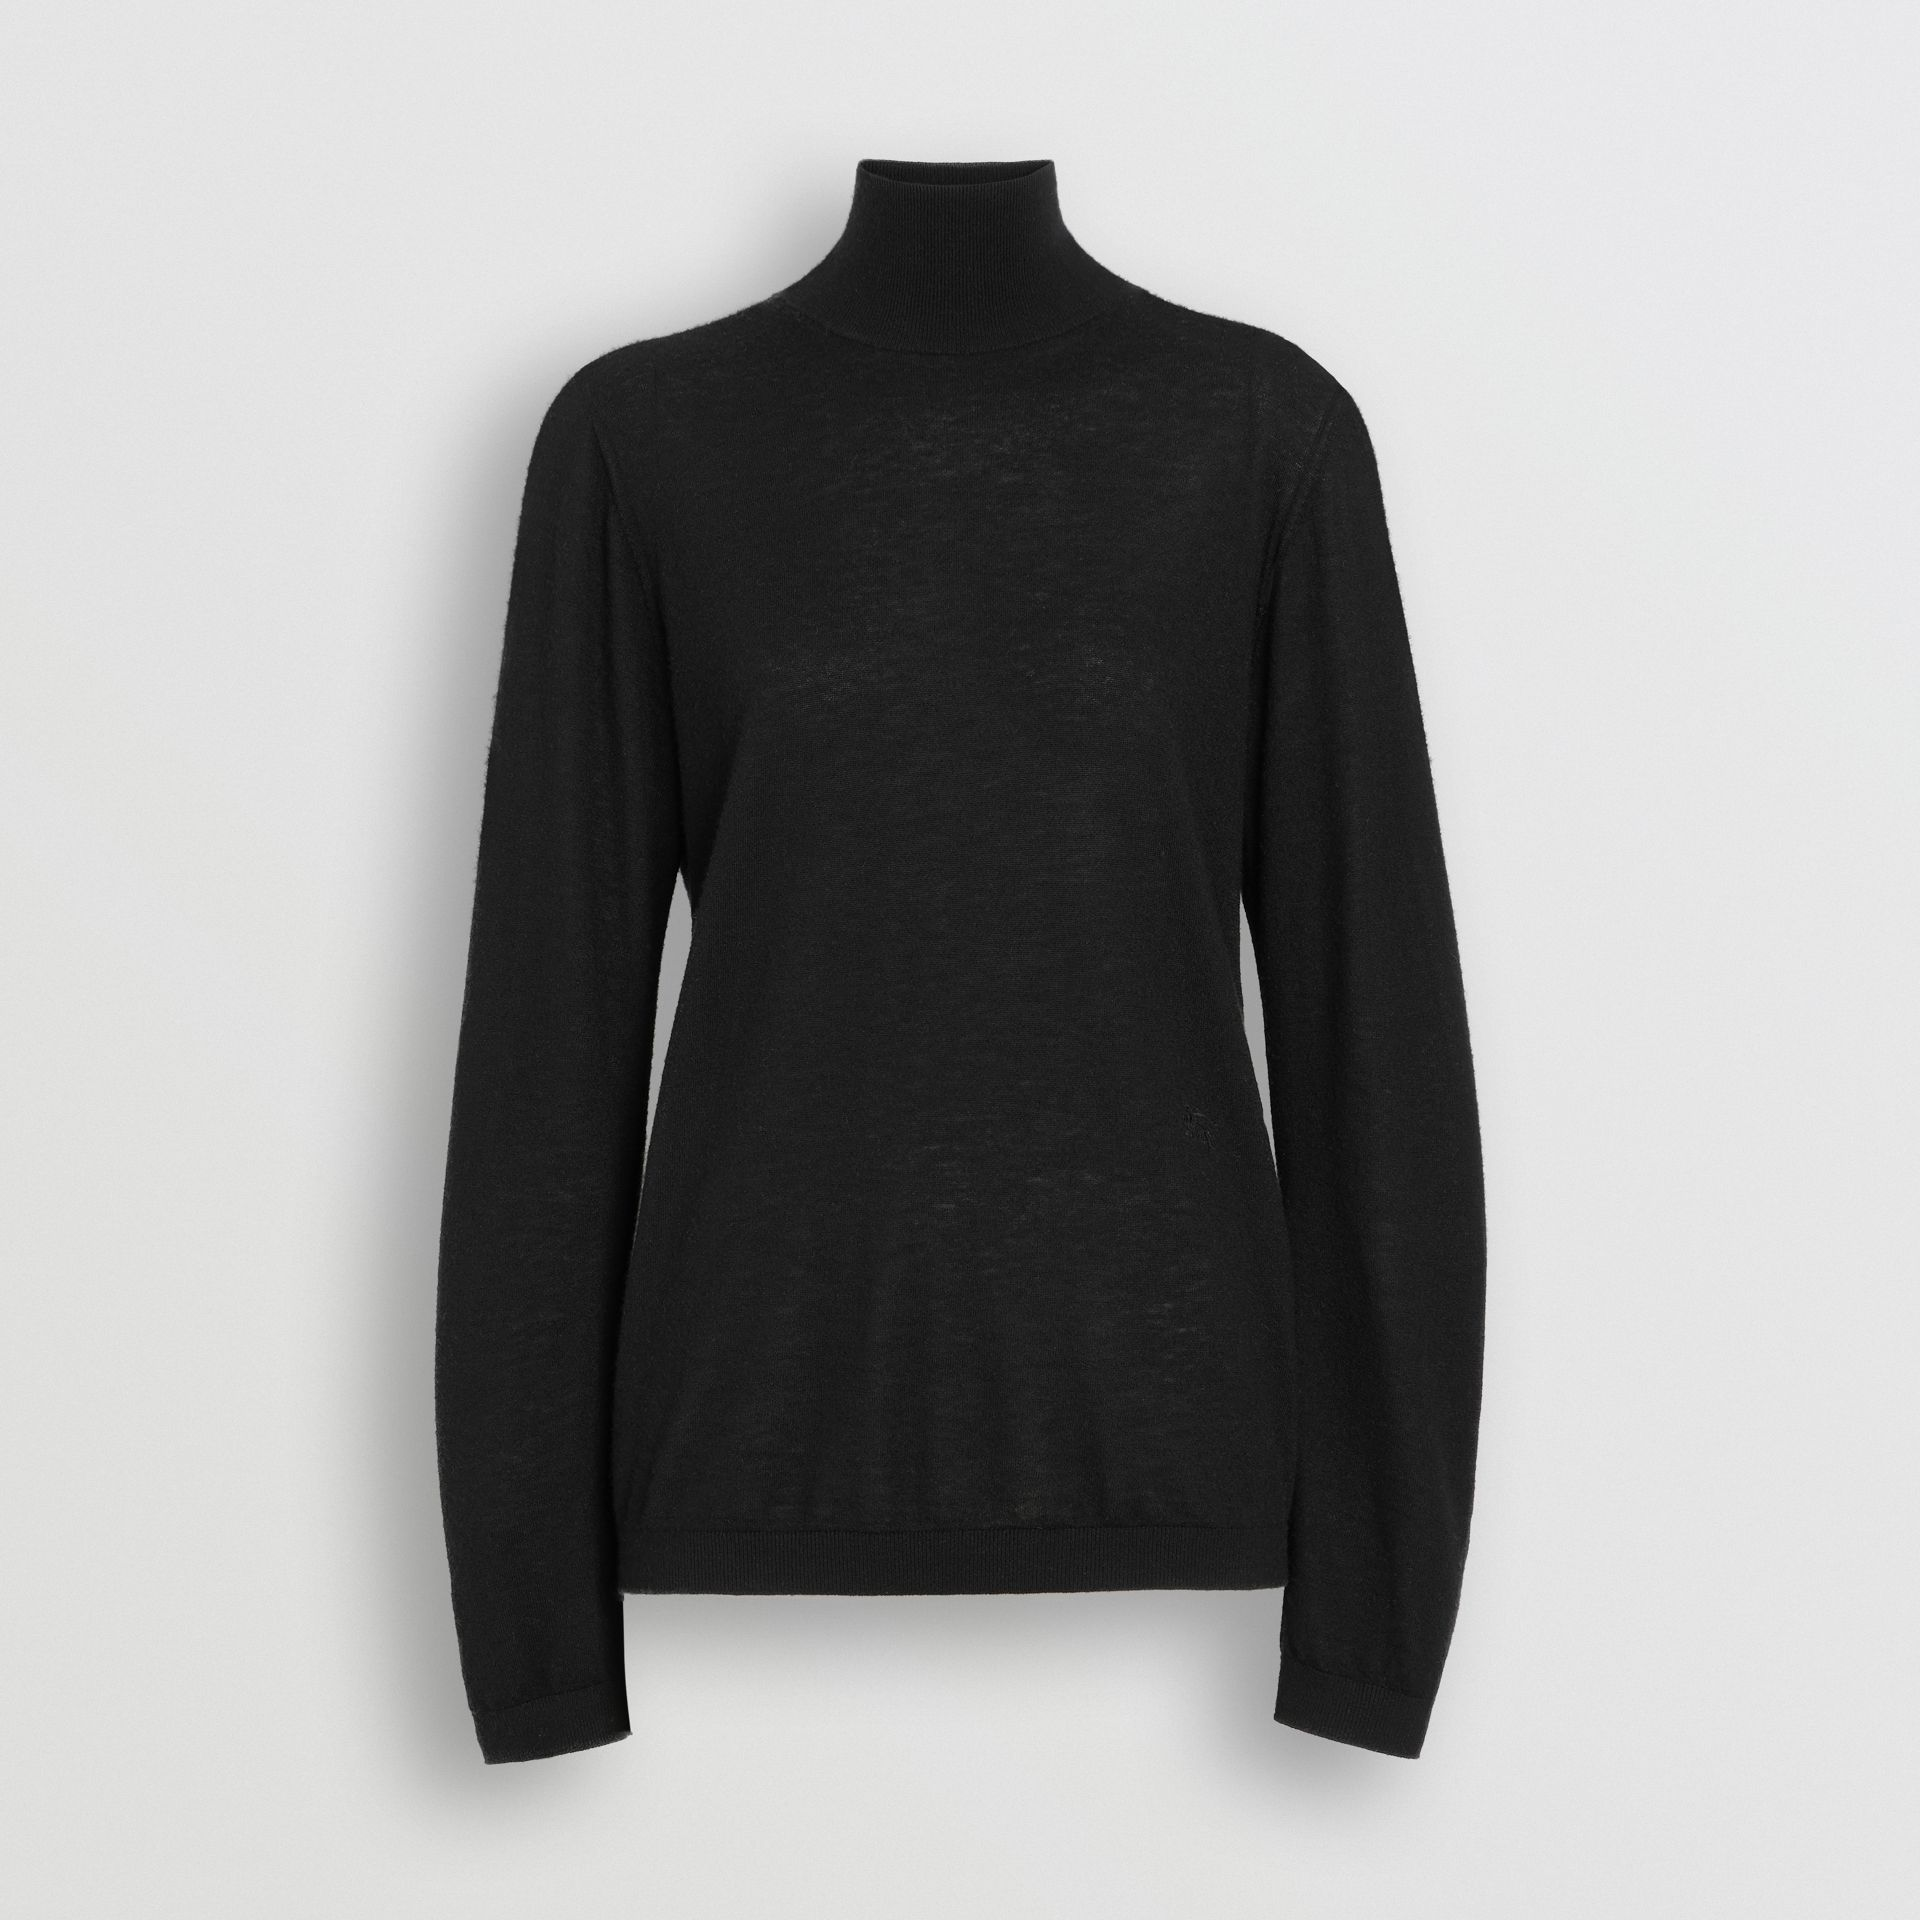 Cashmere Turtleneck Sweater in Black - Women | Burberry Australia - gallery image 3